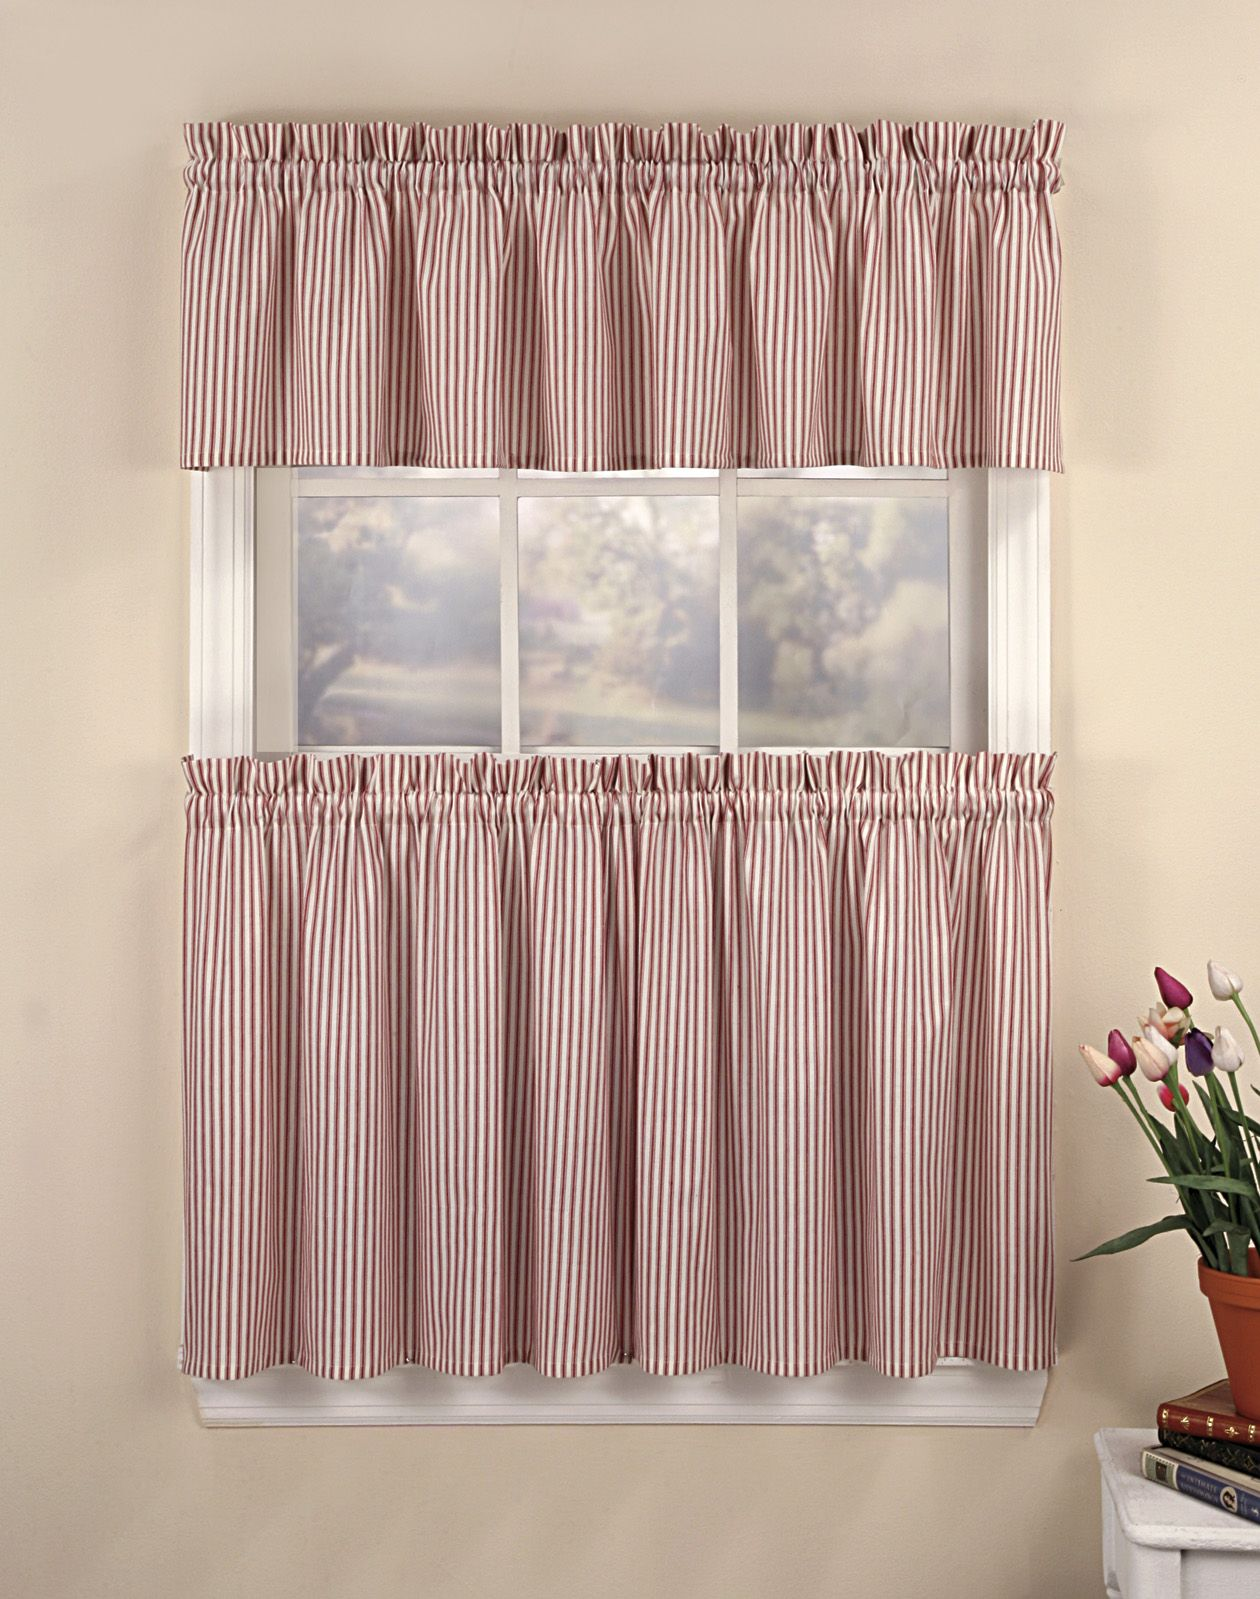 windows bathroom curtains garden decorating treatments best kitchen seat curtain on size home covering bay ideas coverings design sill lowes target sink full window of over